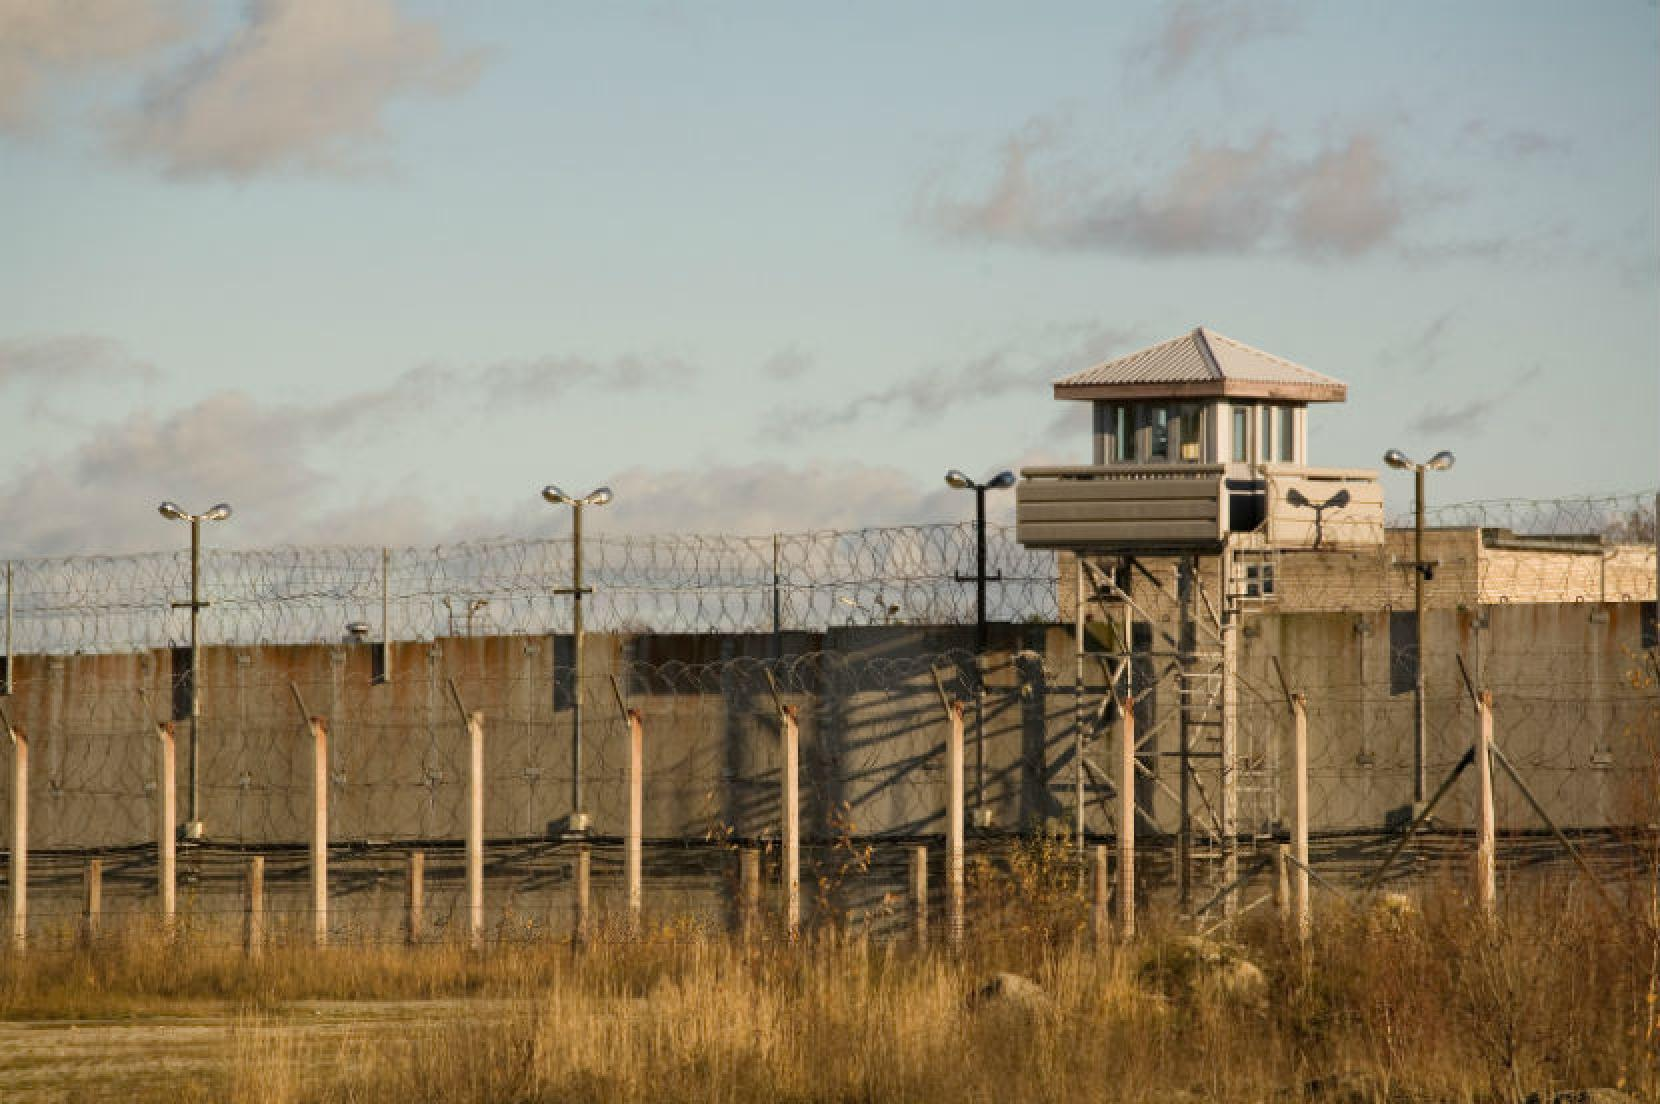 More than 70% of Texas prisons don't have Air Conditioning - Law Officer